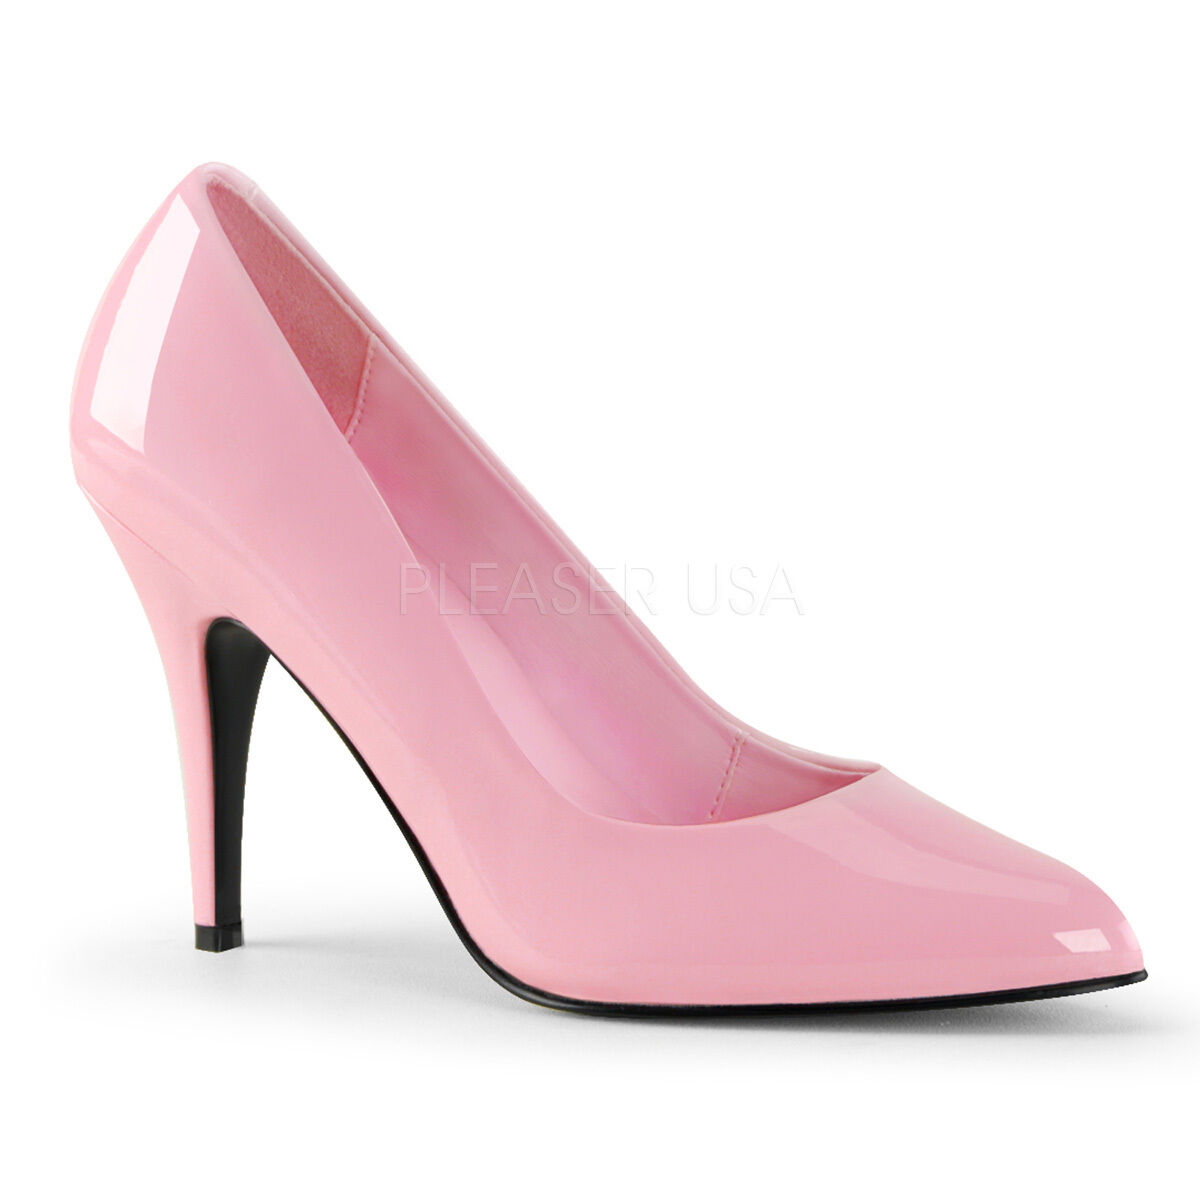 PLEBSER VBNITY-420 BBBY PINK PBTENT STILETTO HEEL COURT SHOES